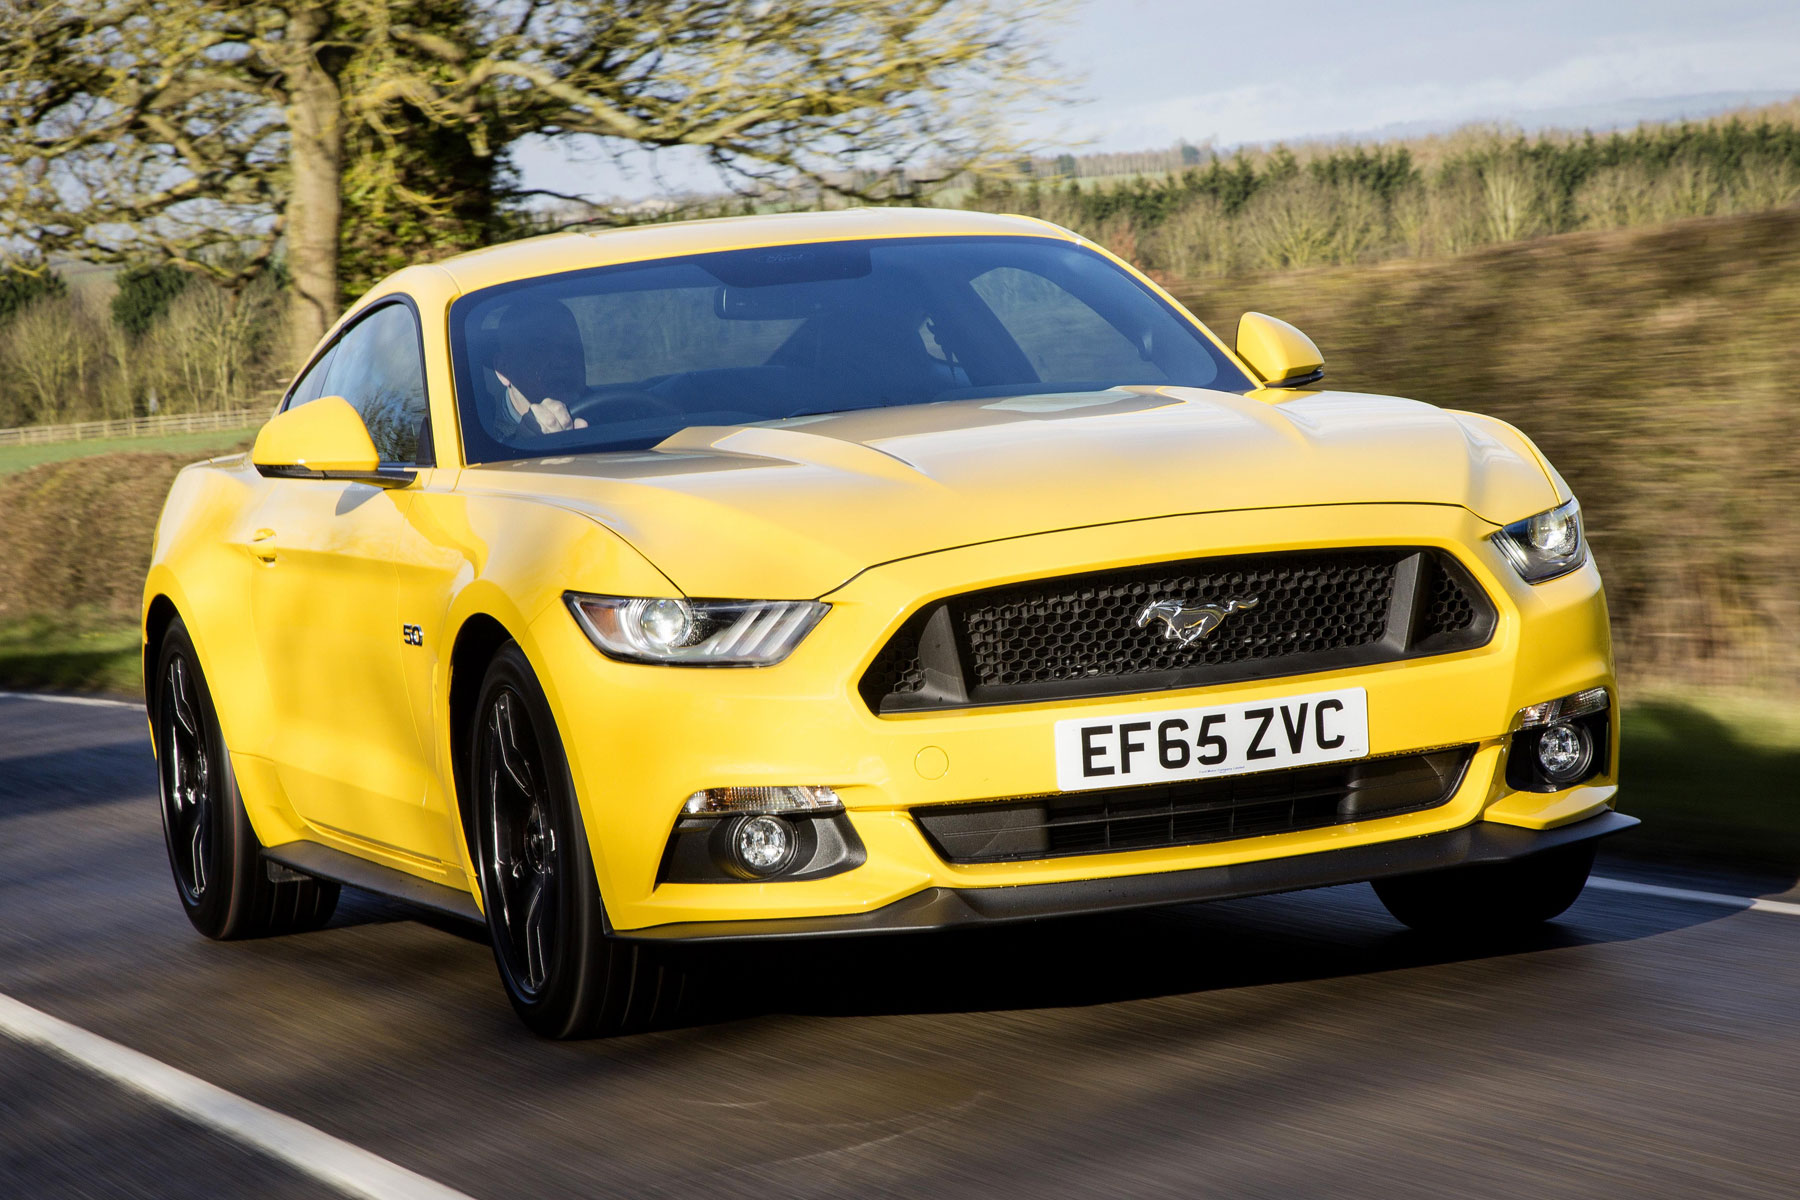 The Ford Mustang is the most popular sports car in the world